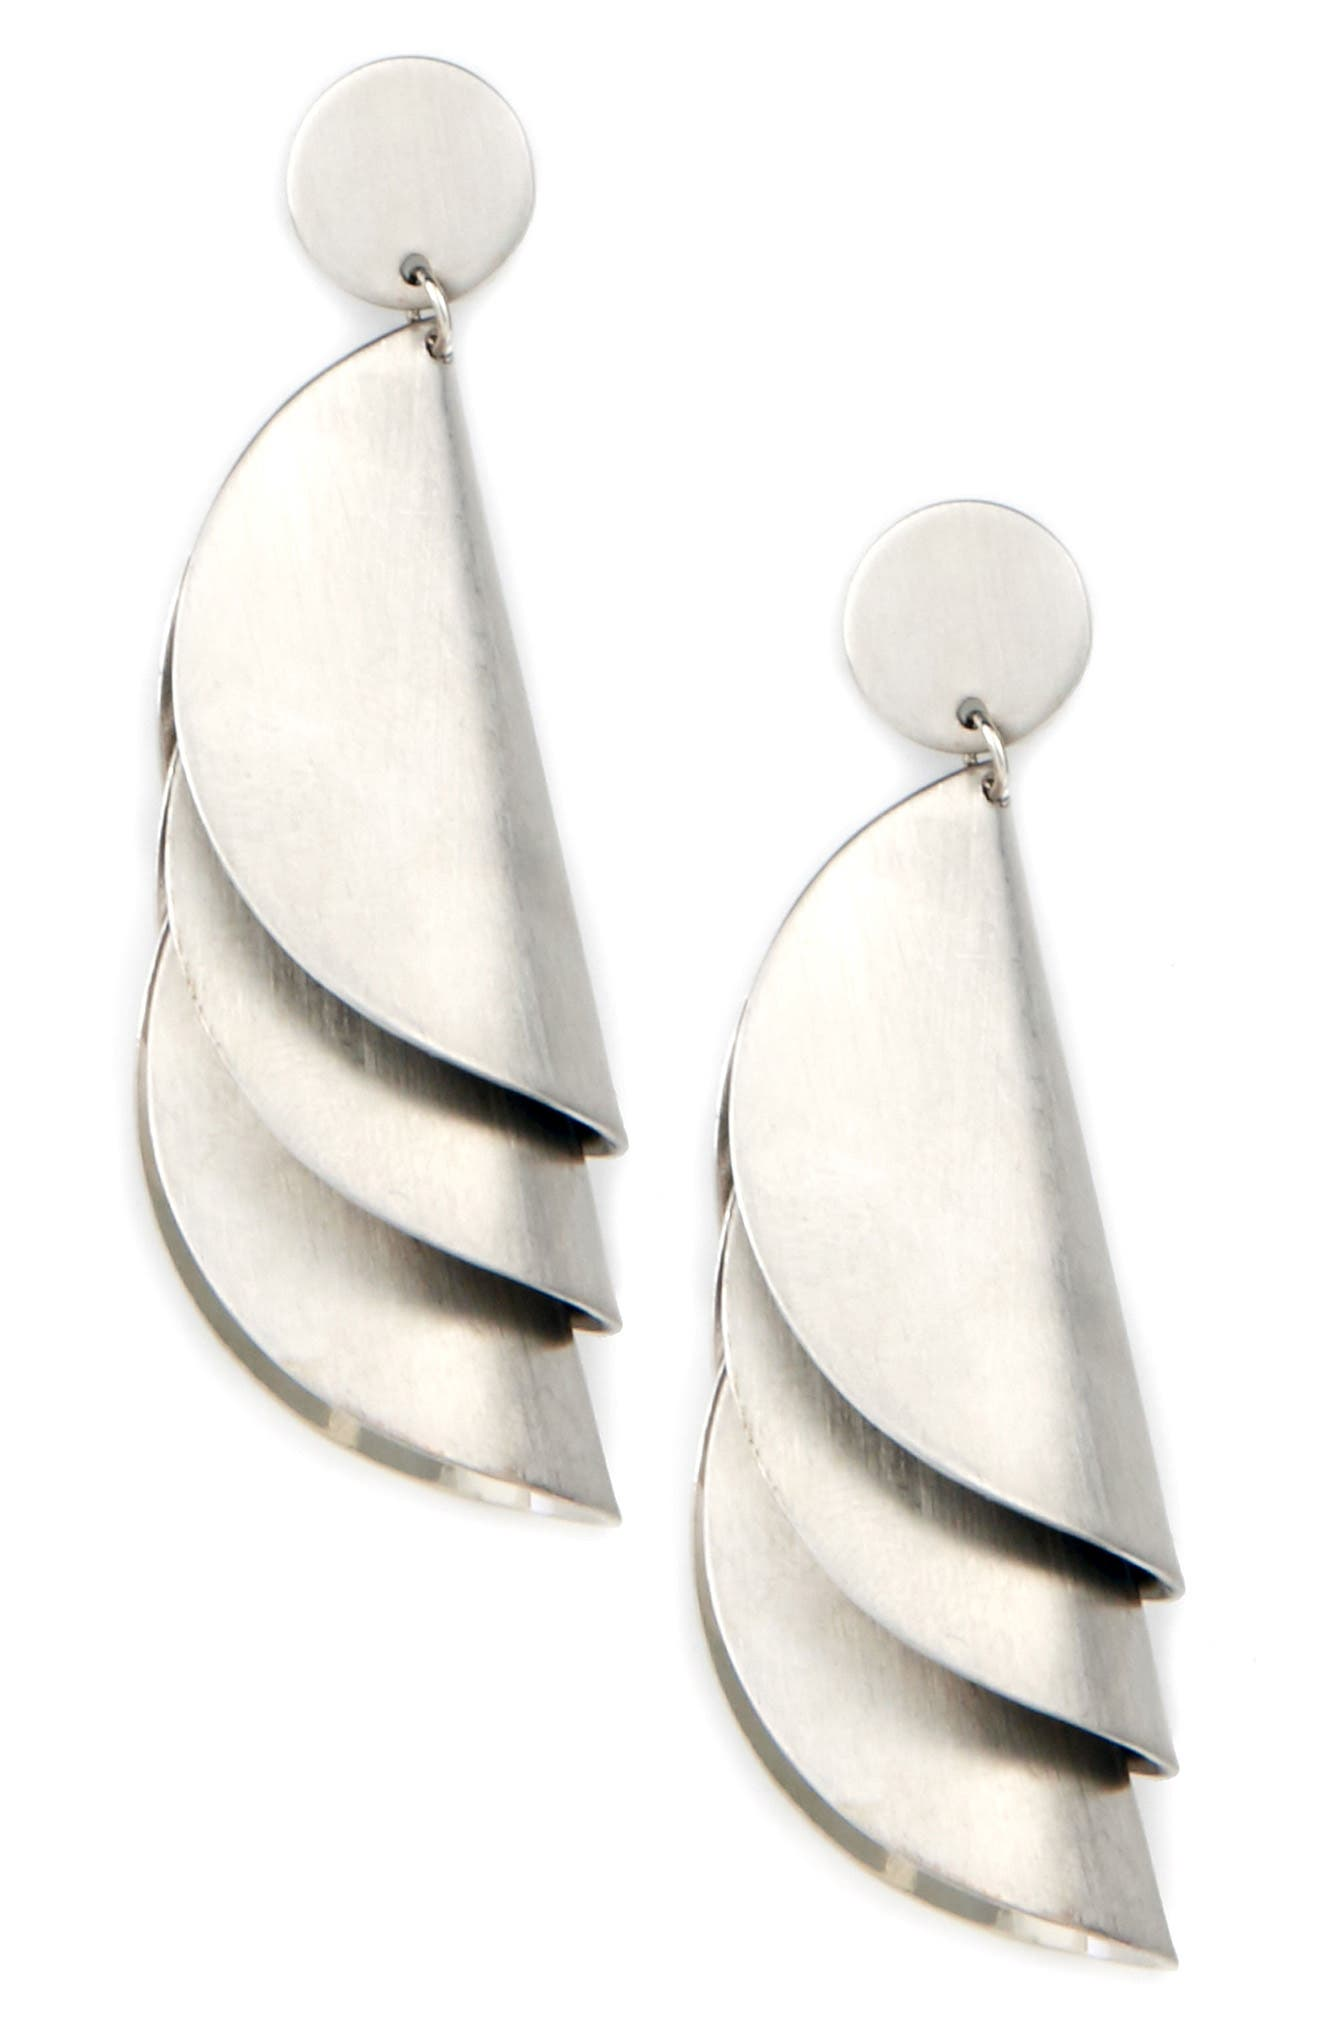 Fossil Cove Statement Earrings,                             Main thumbnail 1, color,                             040